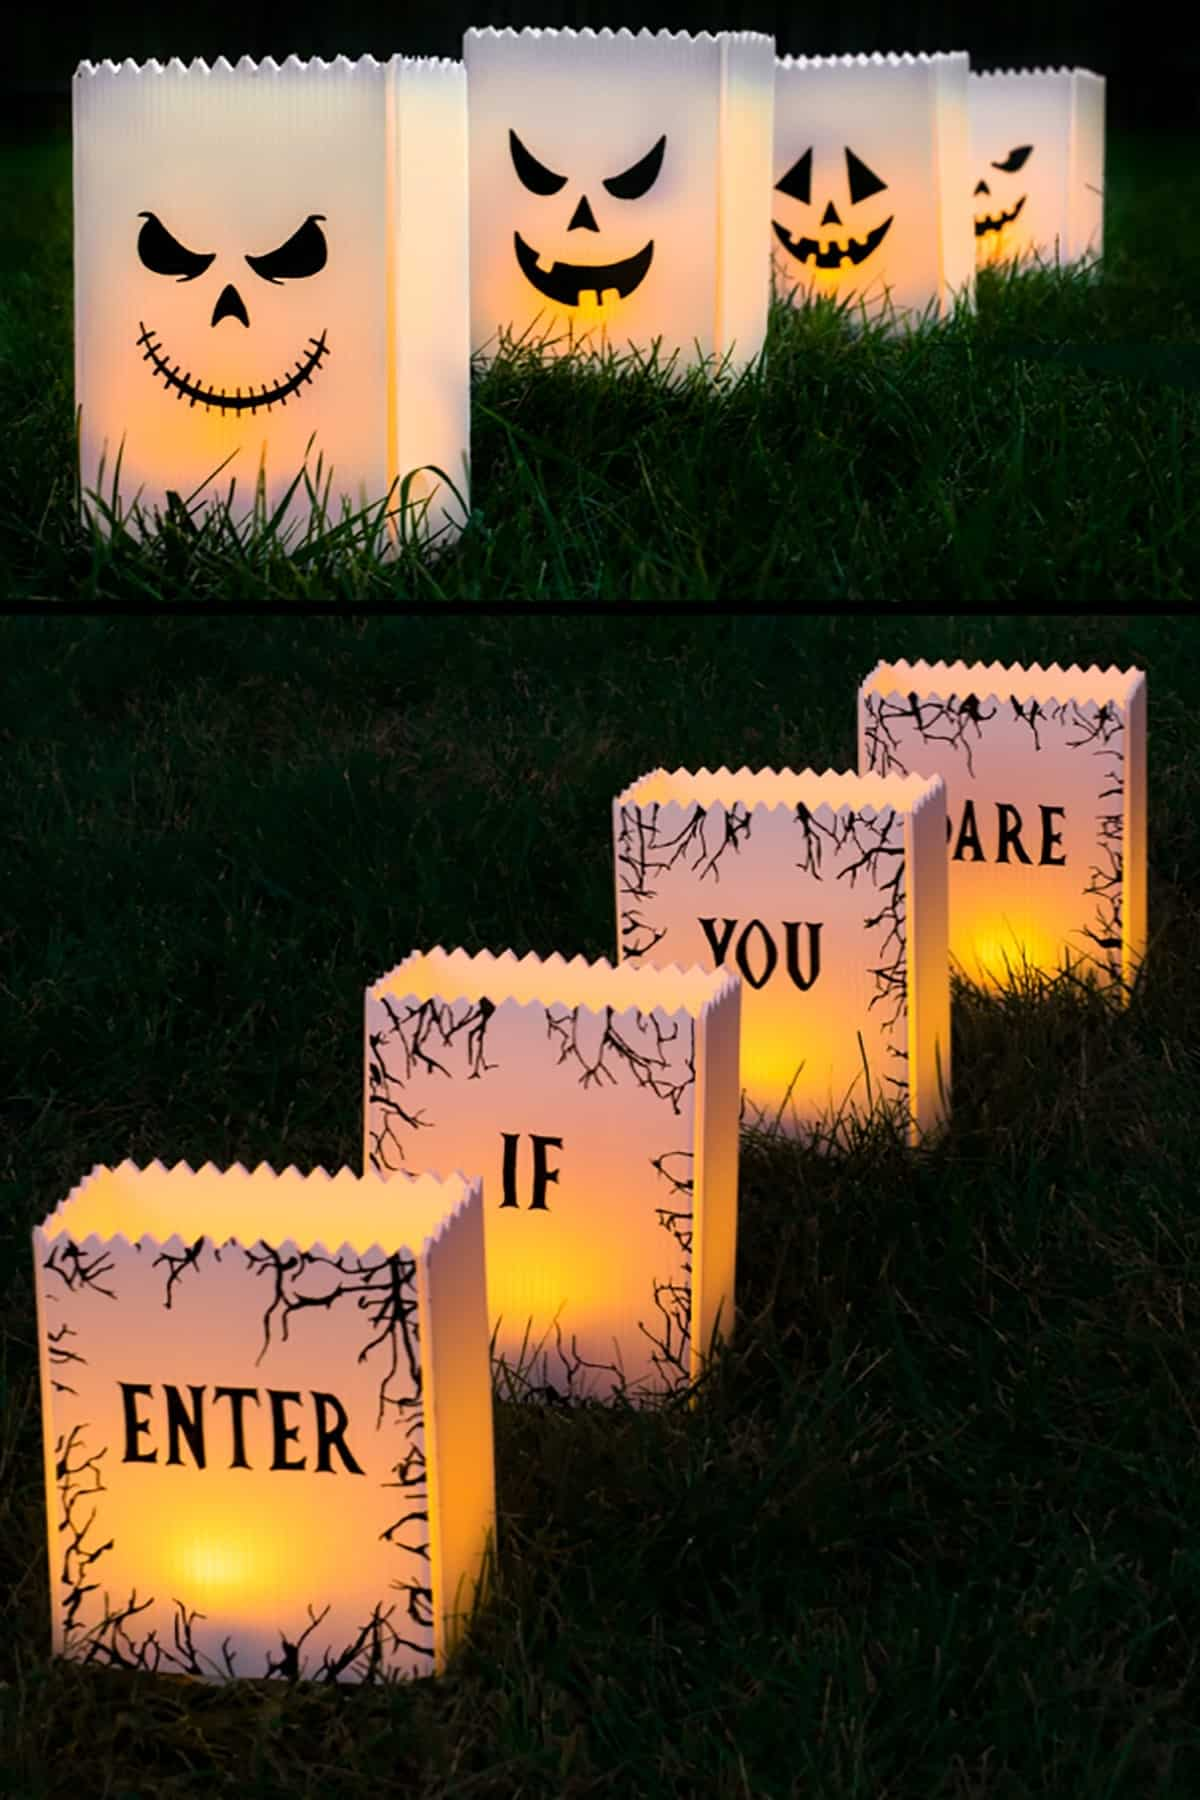 Halloween lanterns lit up at night in the grass. White with black accents- jack-o-lantern and Enter if you dare message.